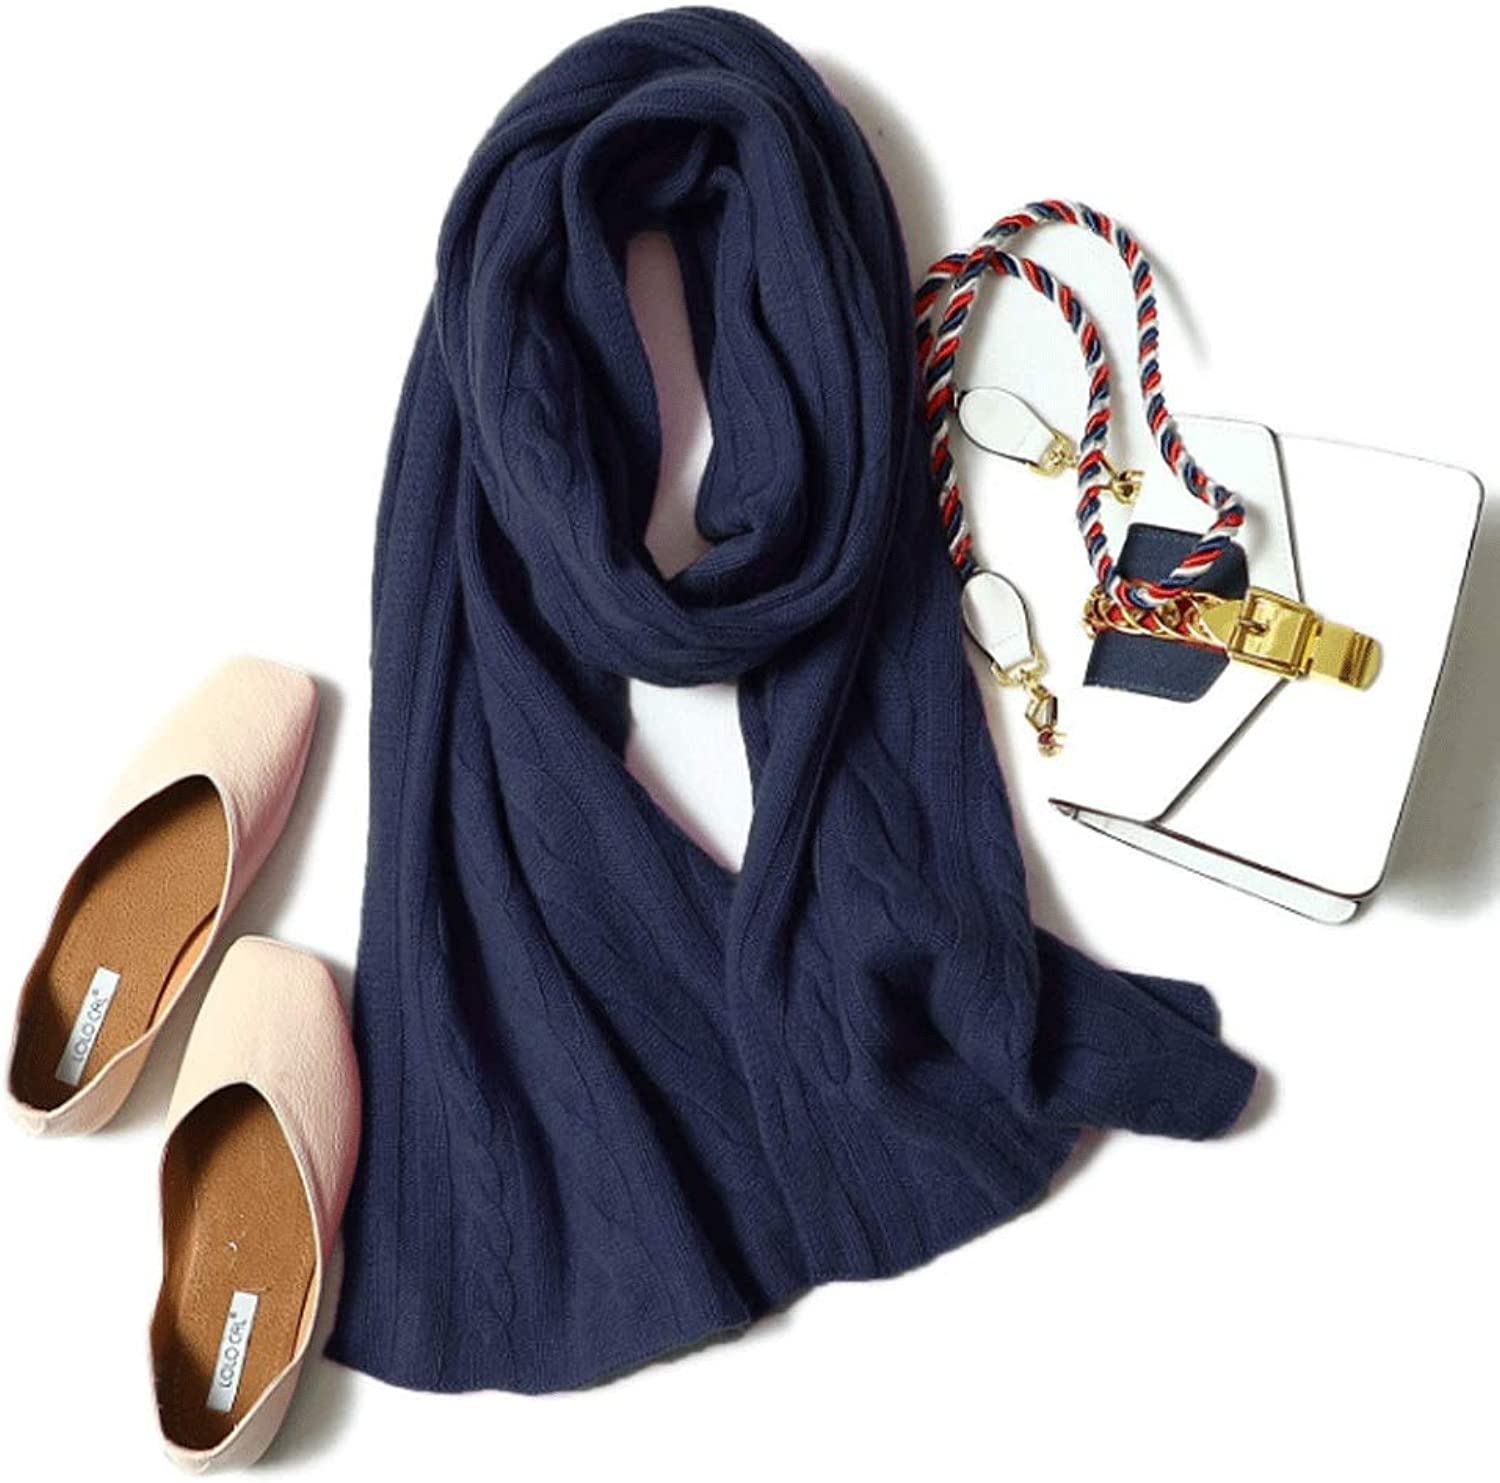 Pure Cashmere Twisted Rope Scarf Autumn and Winter Unisex Outdoor Sports Thick Warm Bib Soft color Shawl (color   J)